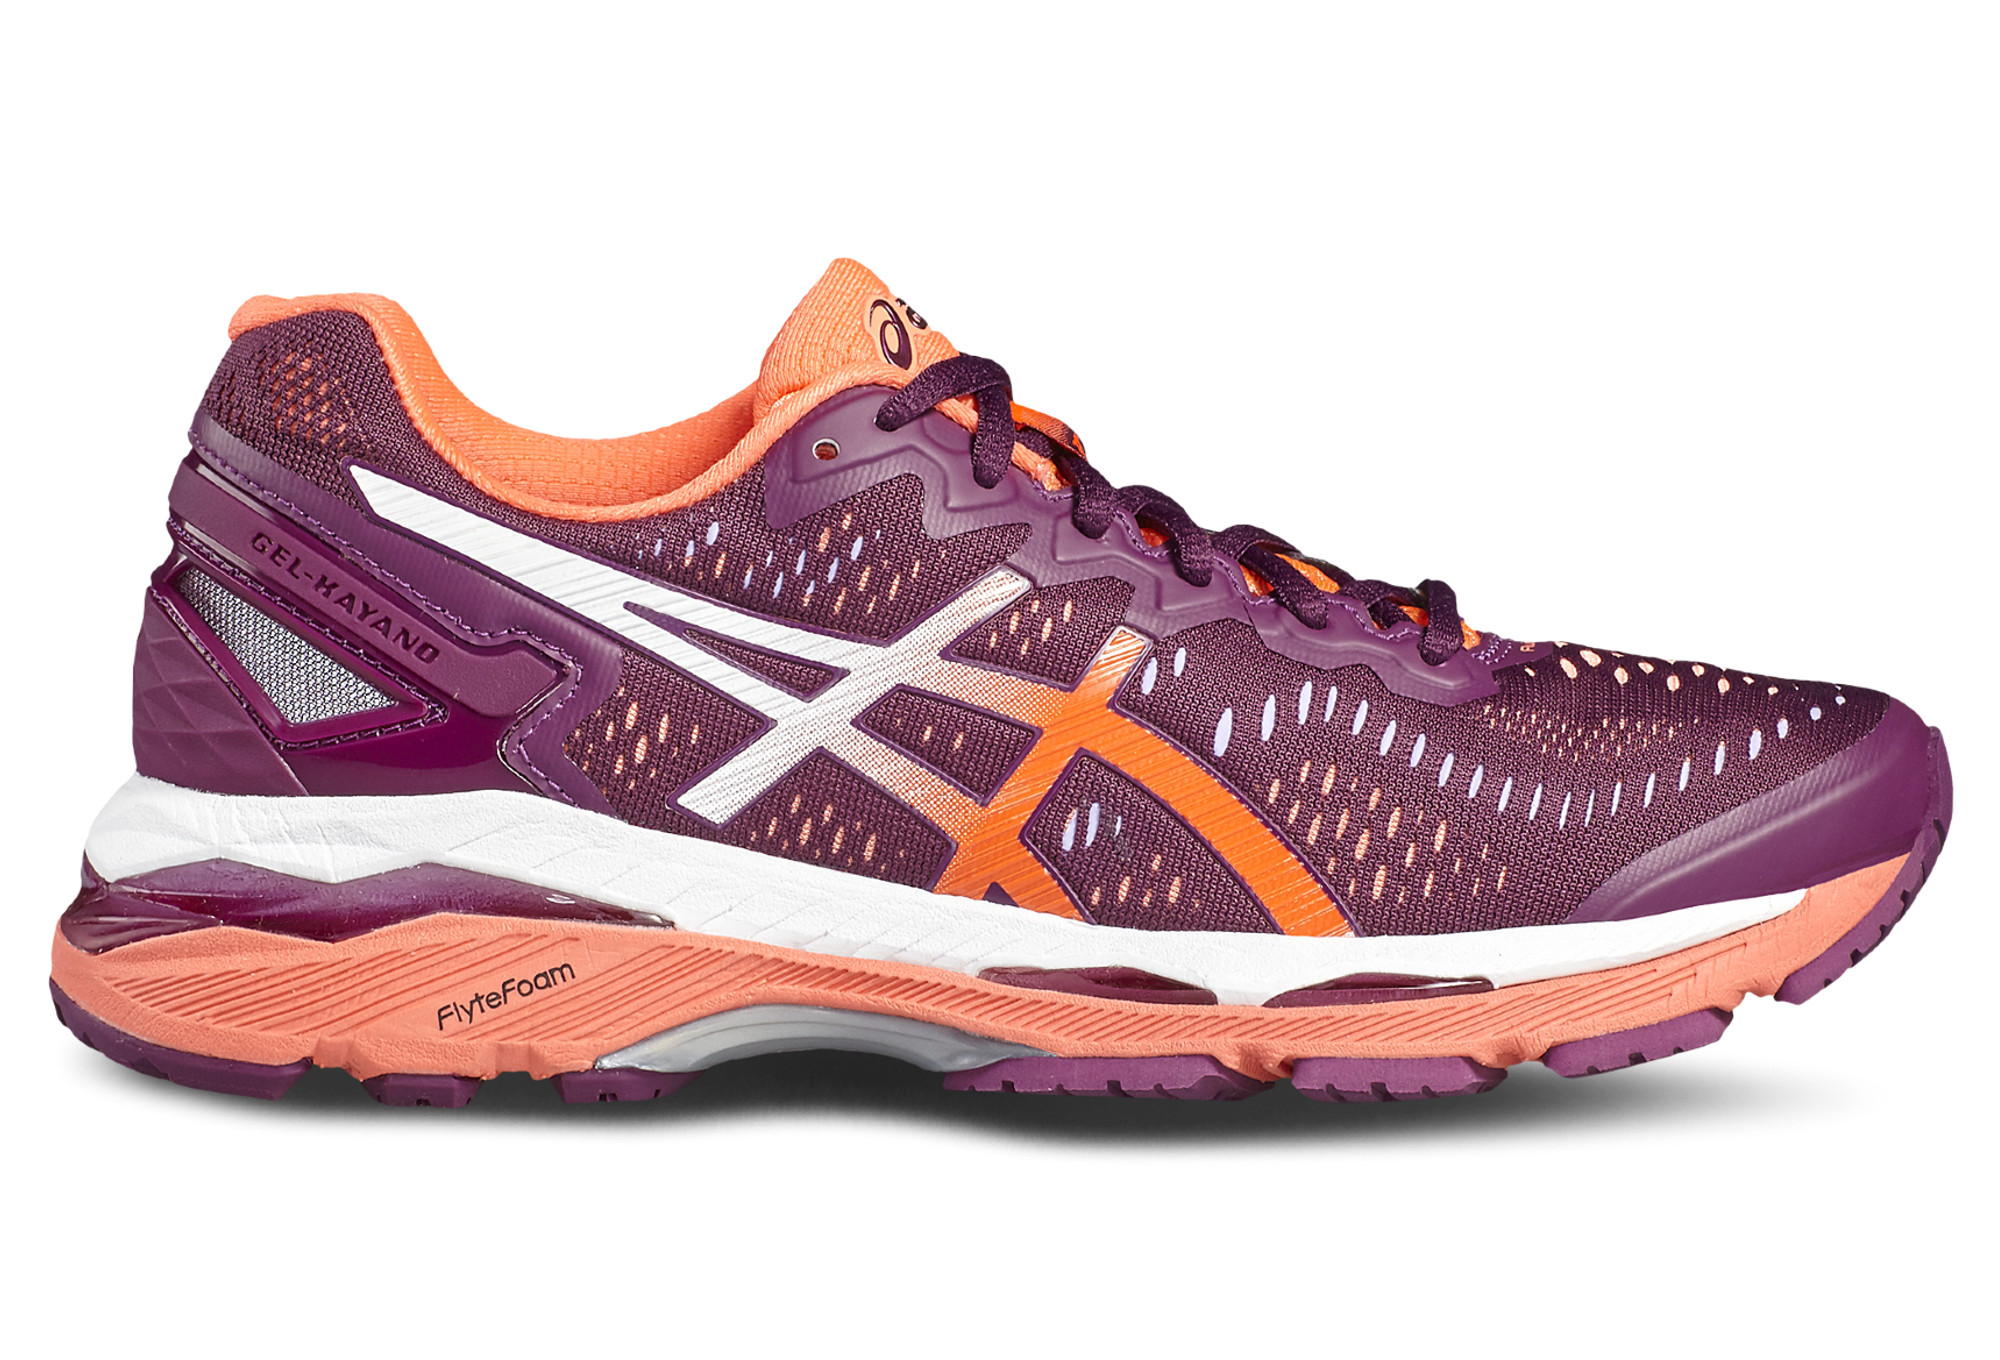 De Femme Running 23 Chaussures Kayano Orange Violet Asics Gel FH1xxqwd